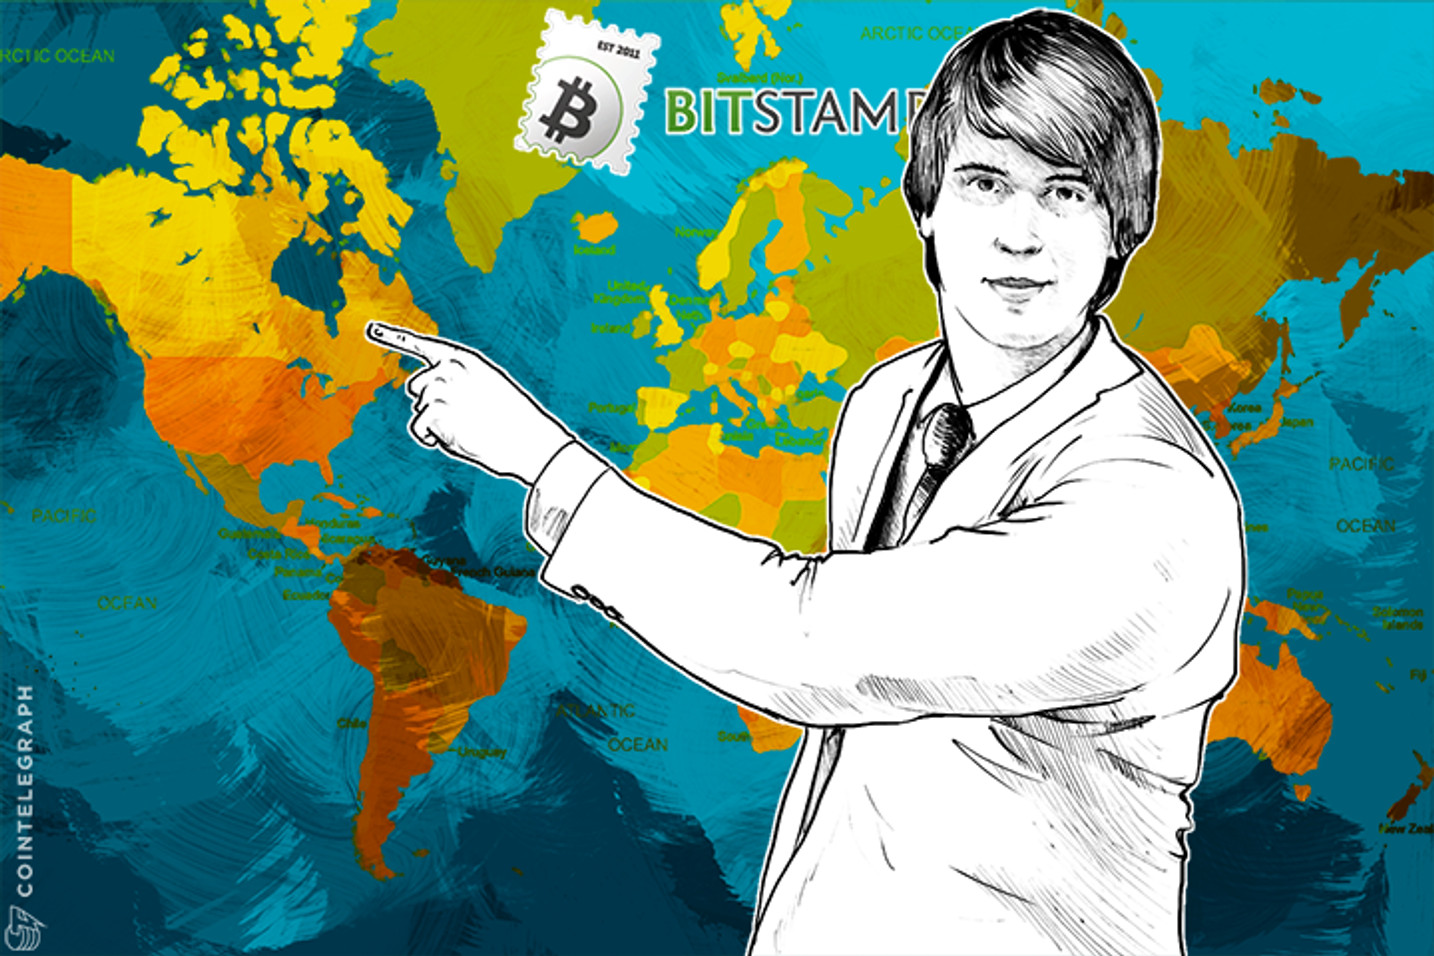 Bitstamp Determined to Extend Global Footprint, Sets Sights on North America